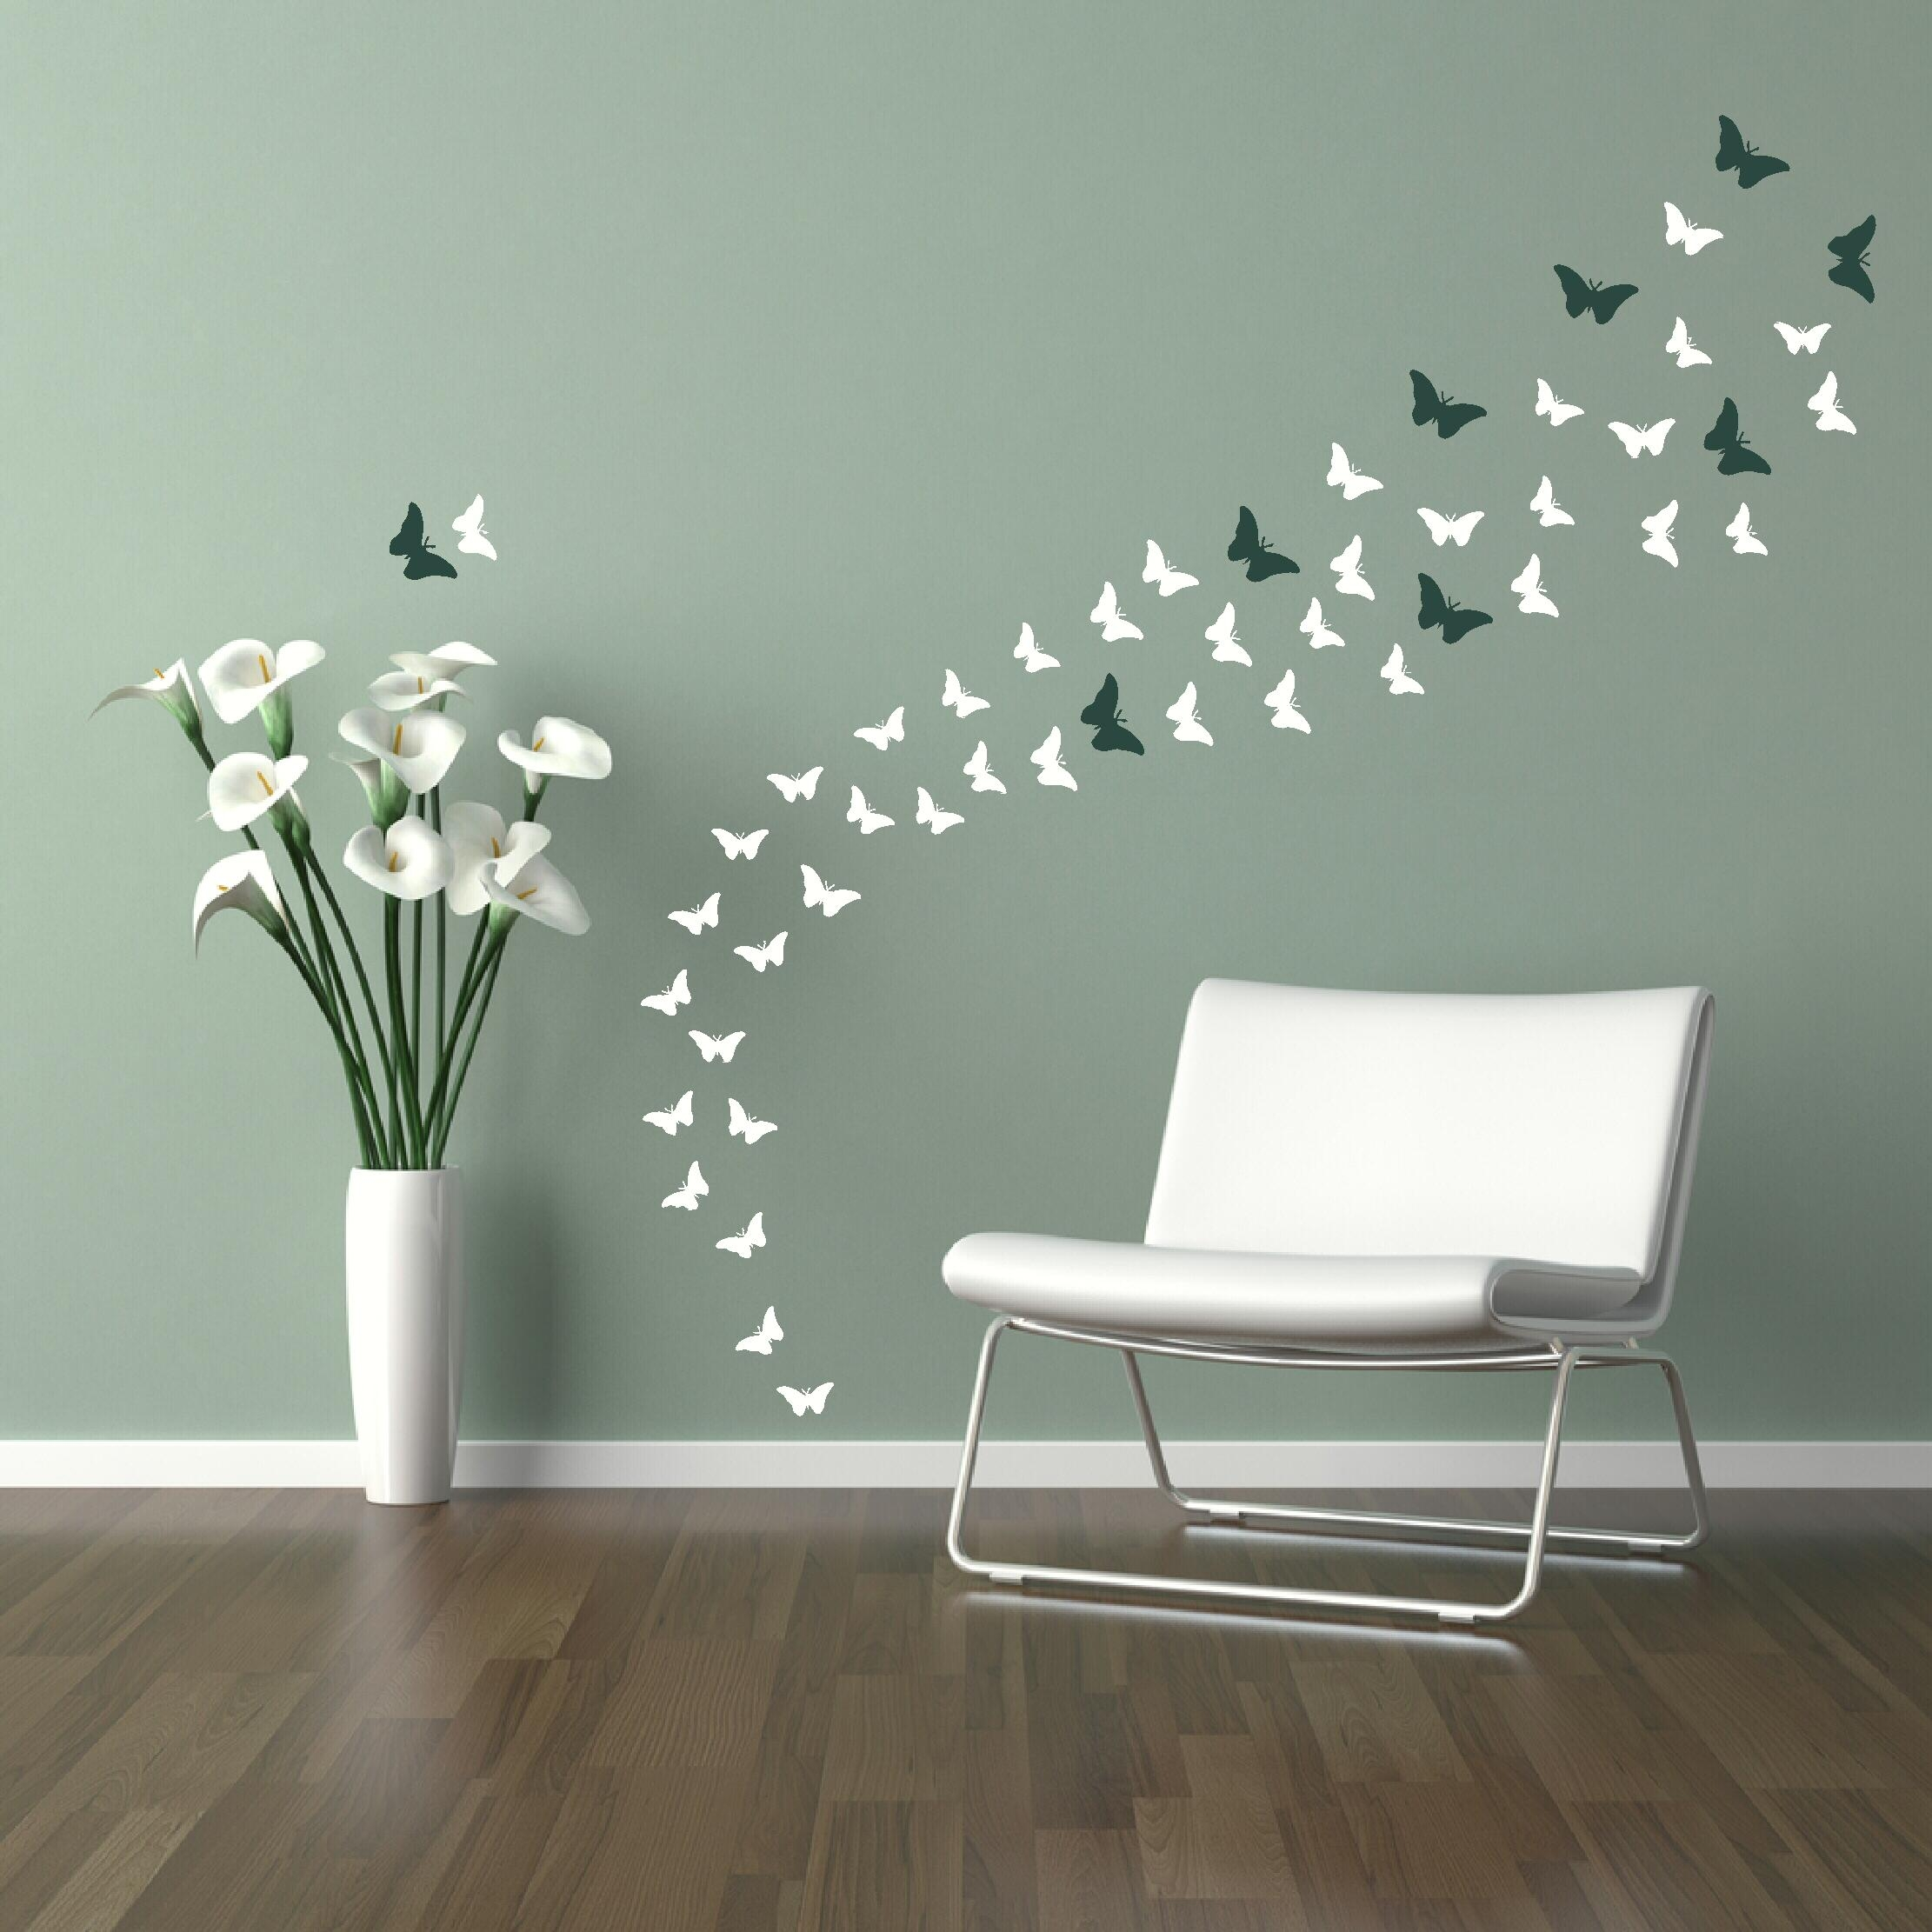 Kids Room: Wall Decal Ideas For Wall Decorations Stickers Tree For Butterflies Wall Art Stickers (View 7 of 20)